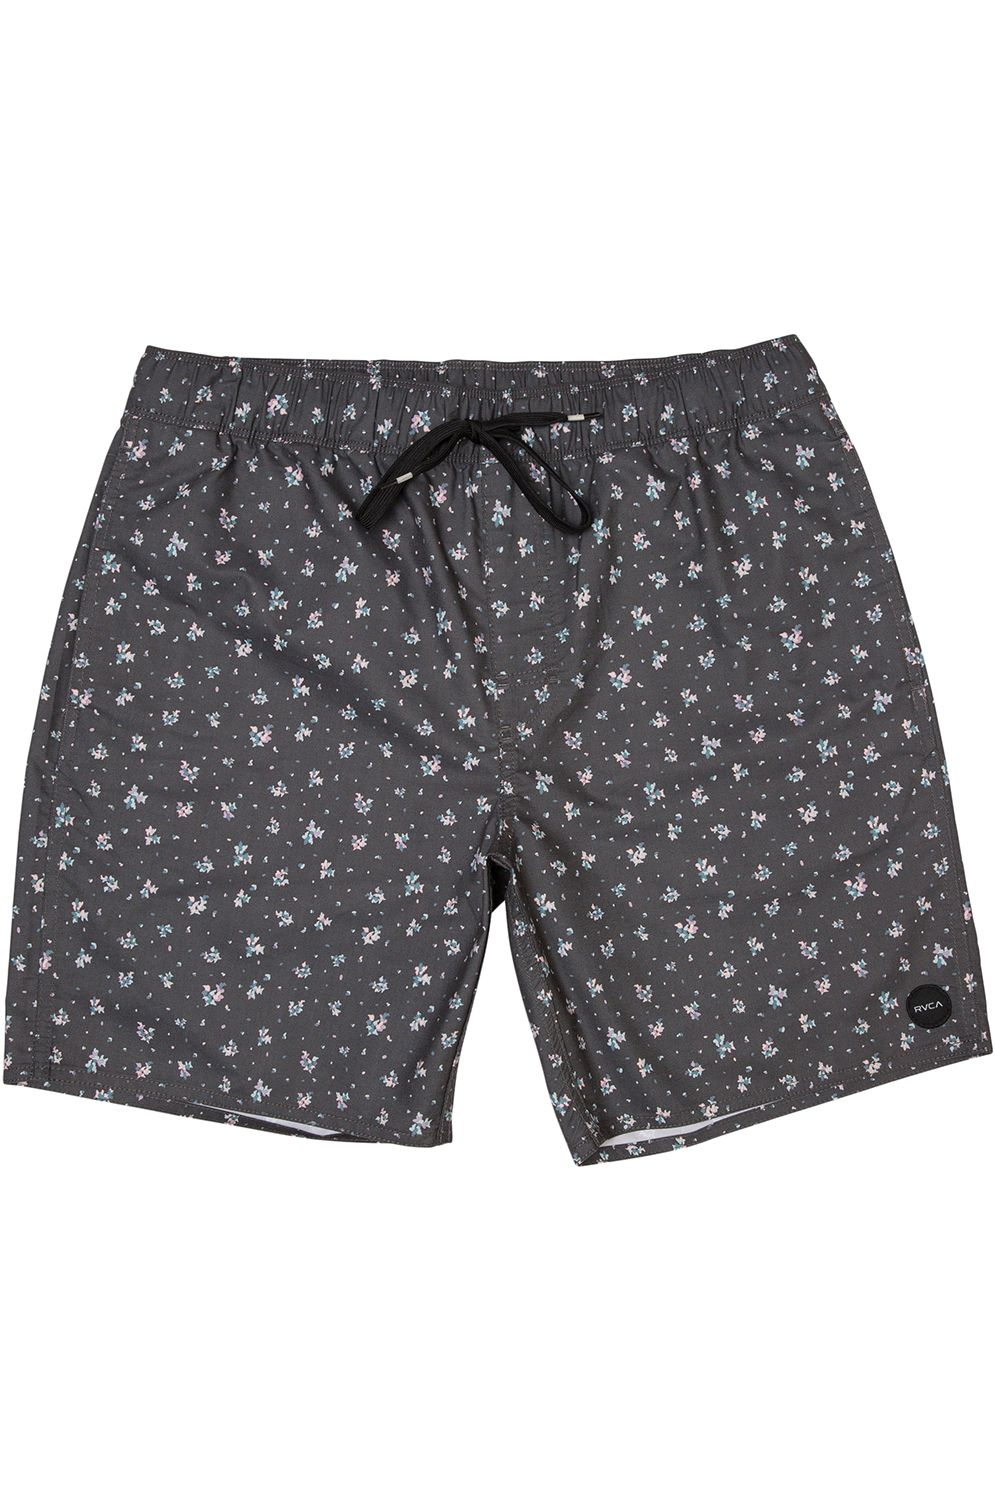 Volleys RVCA SHATTERED ELASTIC Pirate Black